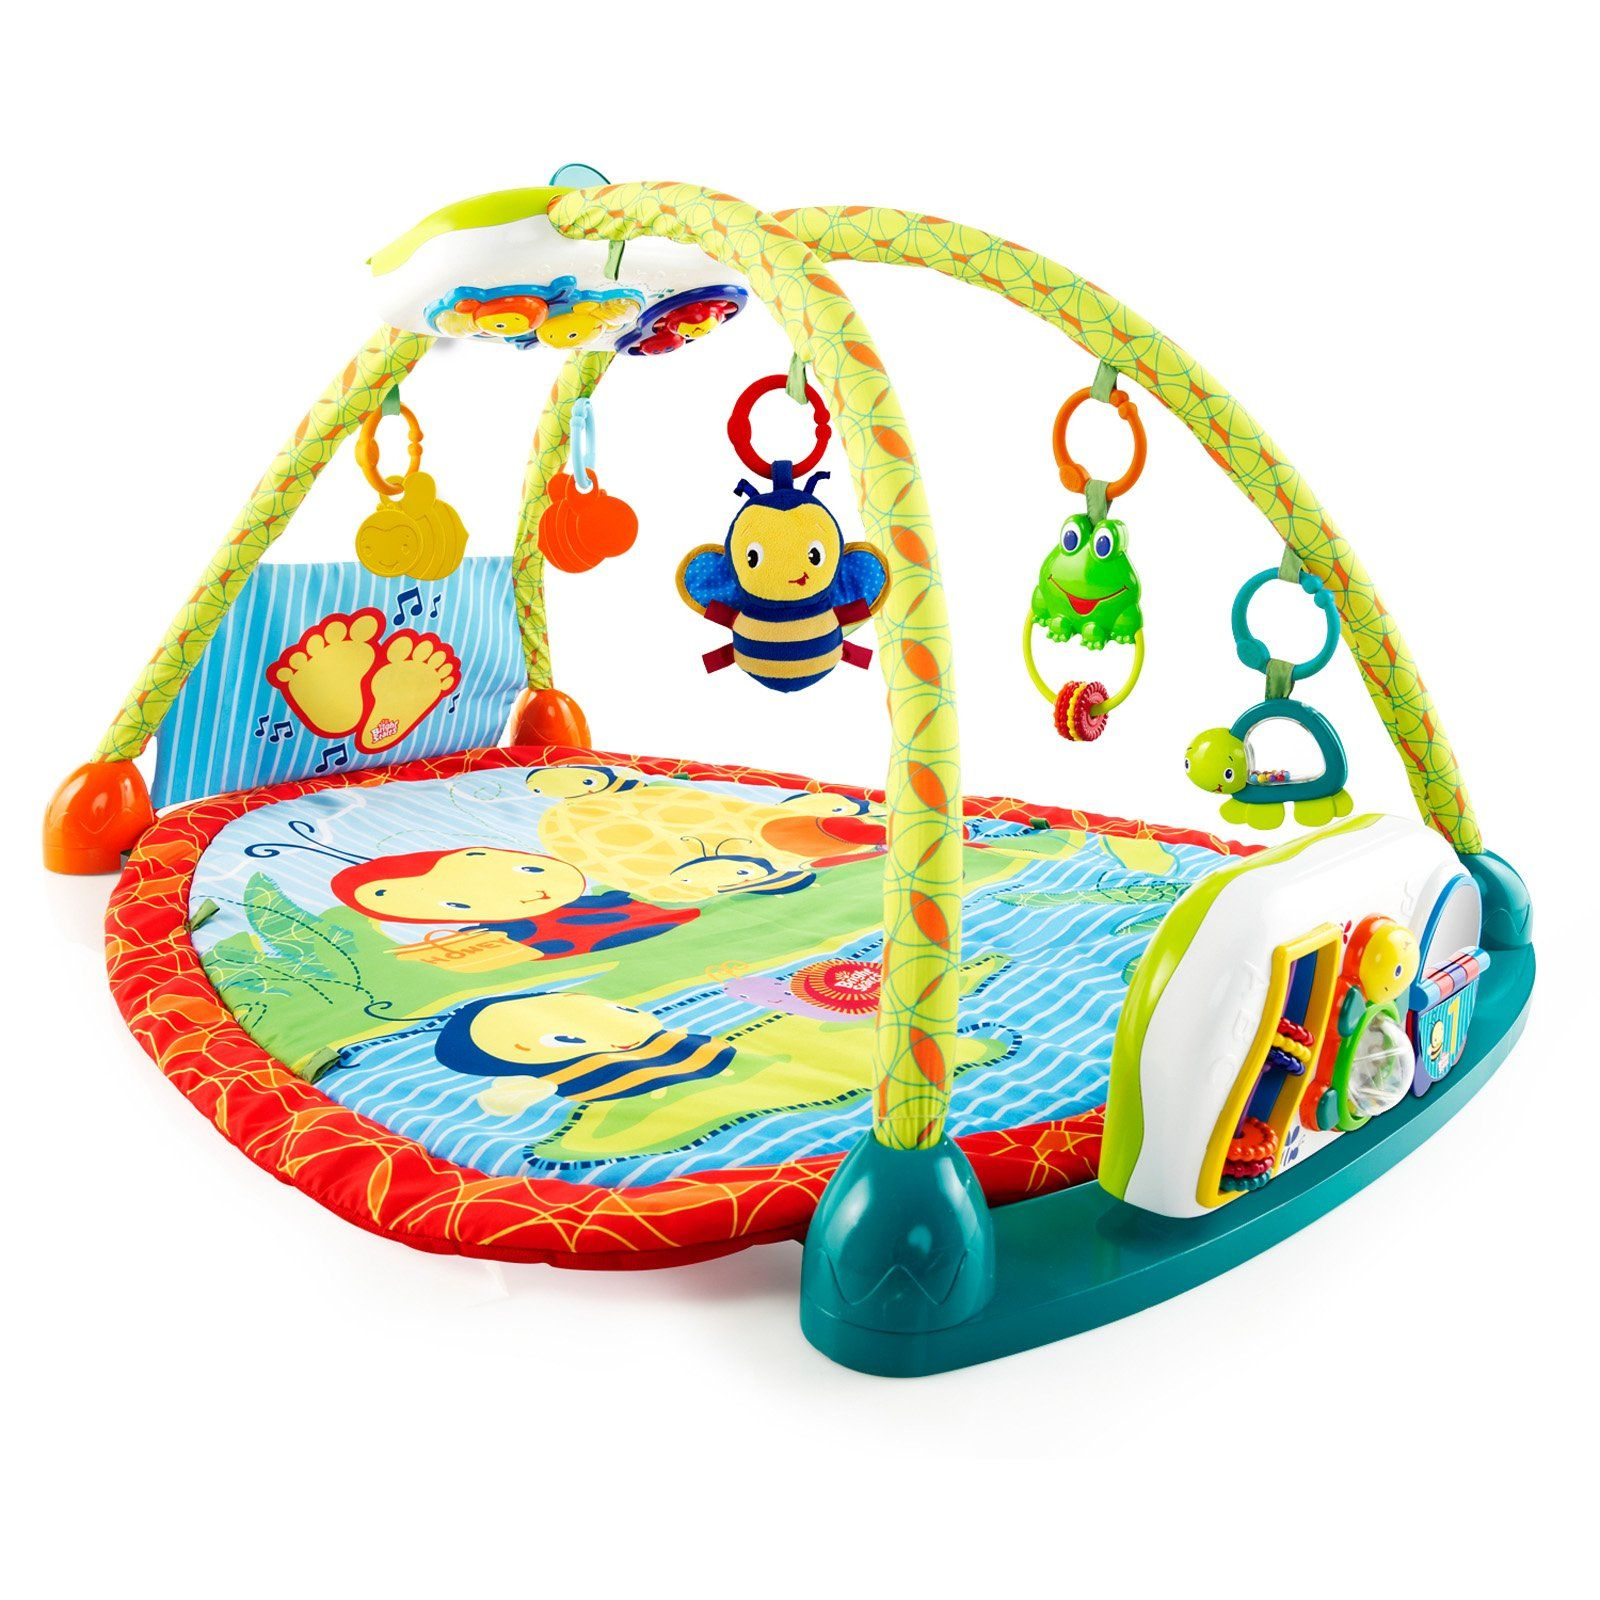 Have to have it Bright Starts 2 in 1 ConvertMe Activity Table and